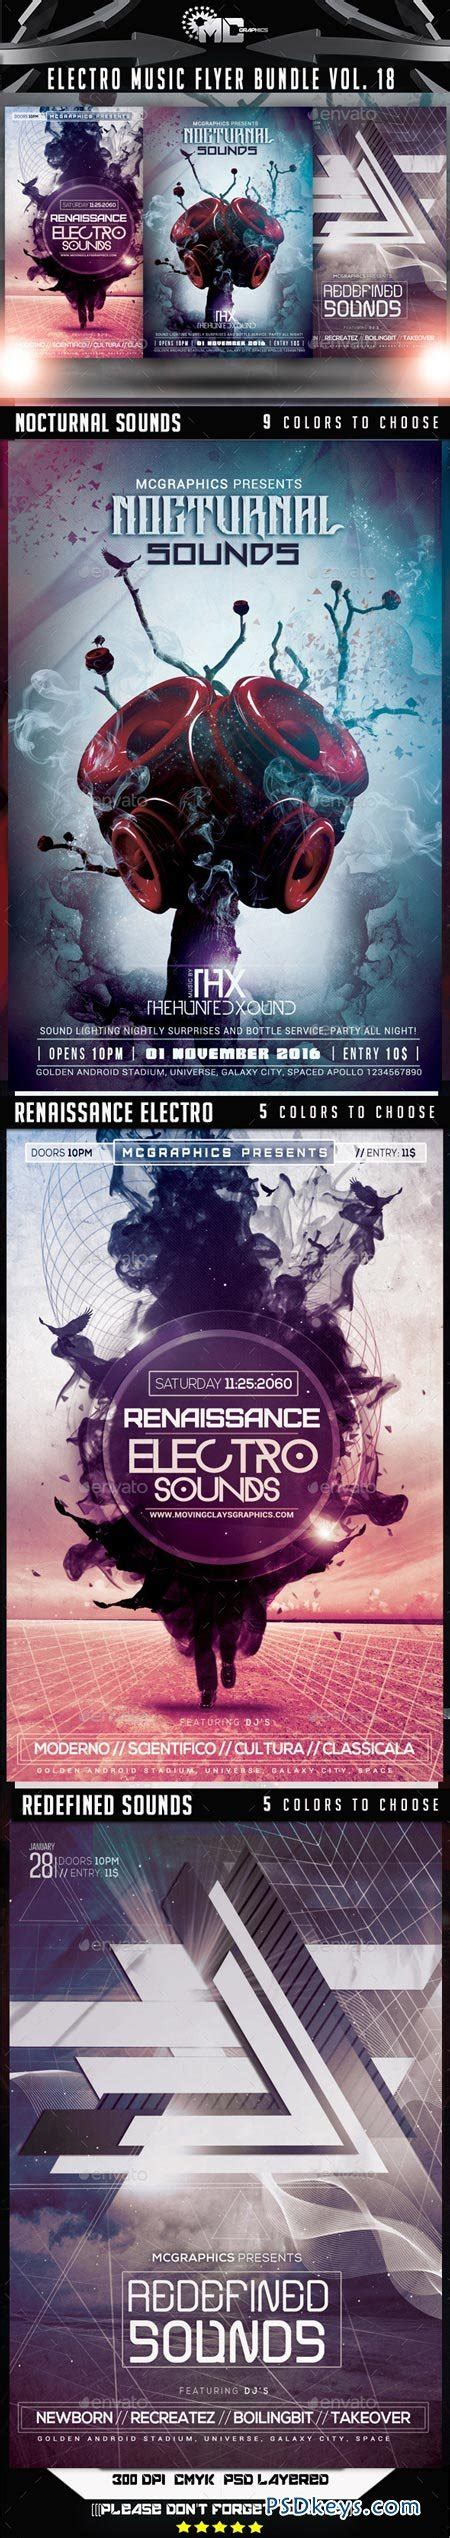 Electro Flyer Poster Template Vol 4 Torrent by Electro Music Flyer Bundle Vol 18 9072558 187 Free Download